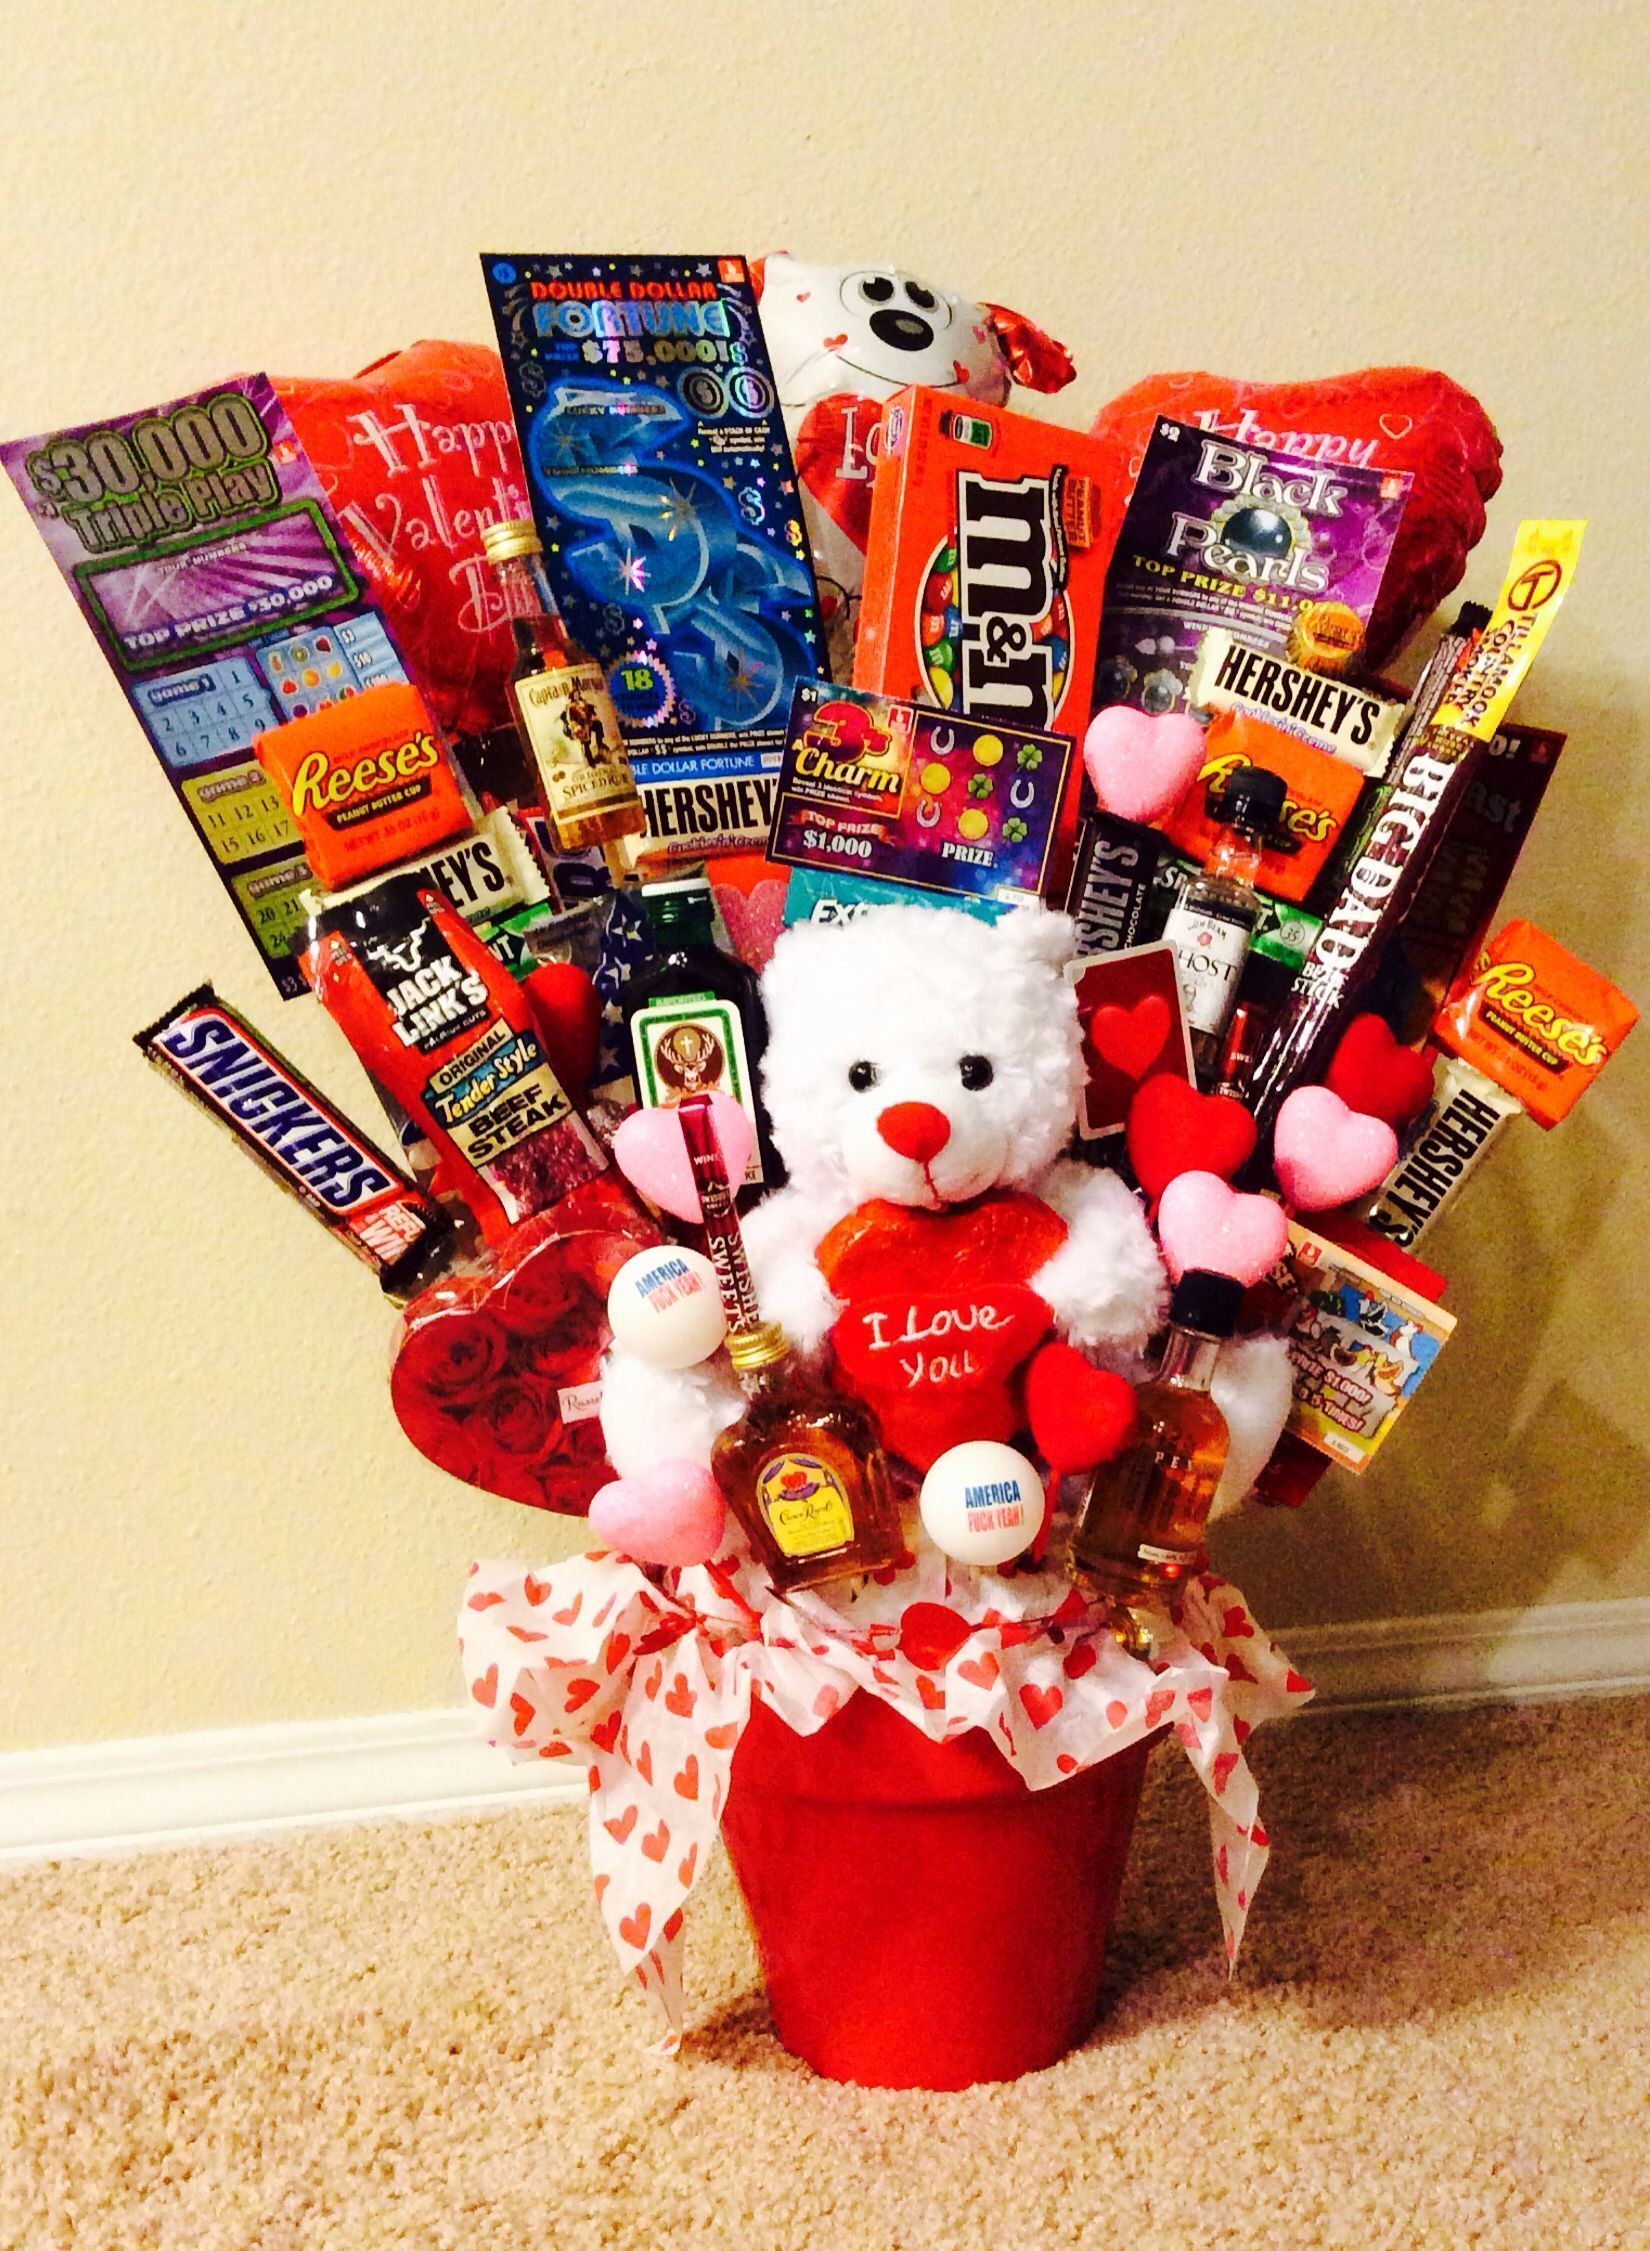 Easter valentines ideas romantic valentines ideas for